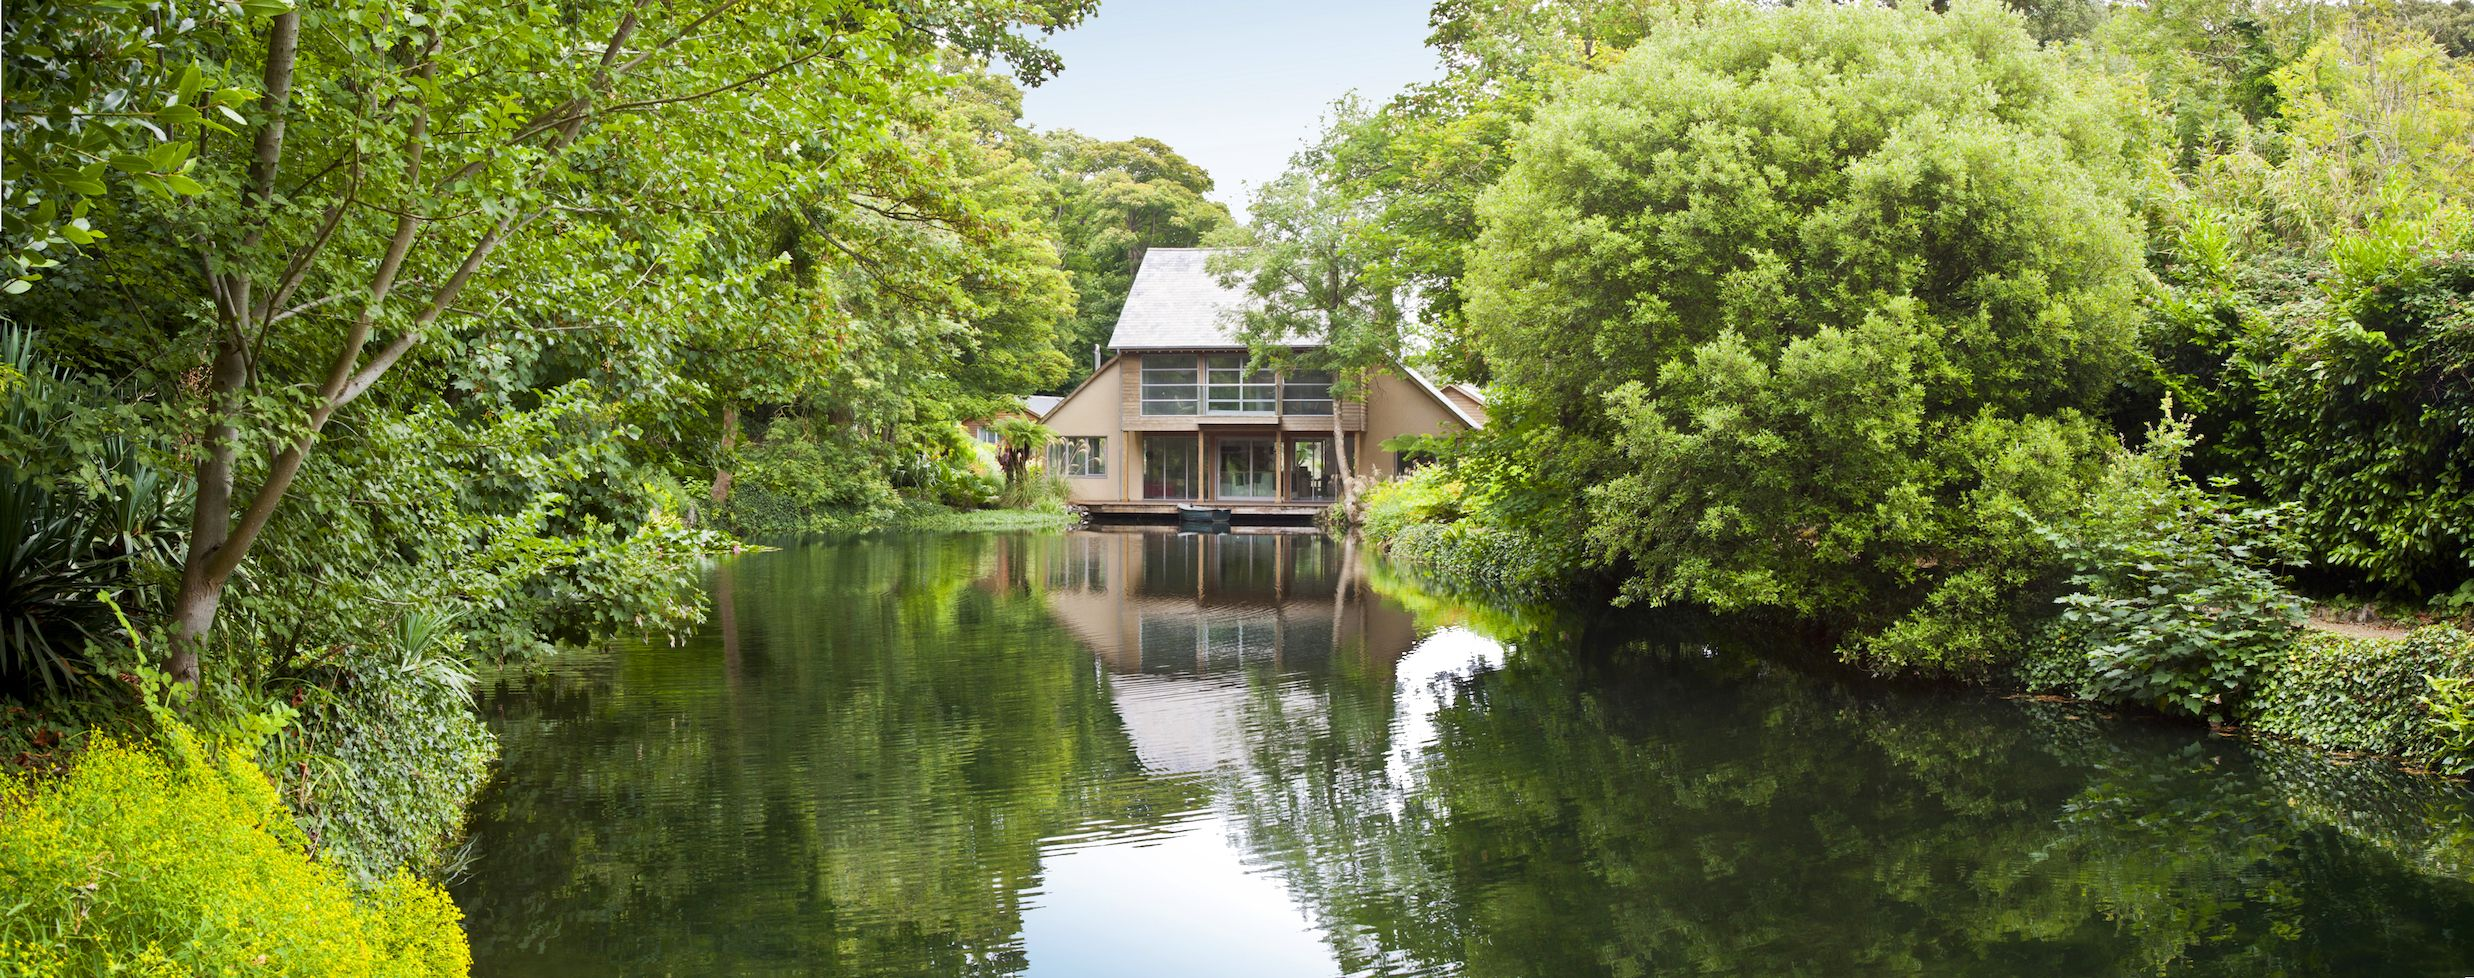 Magical Japanese-inspired lake house for sale on the Isle of Wight